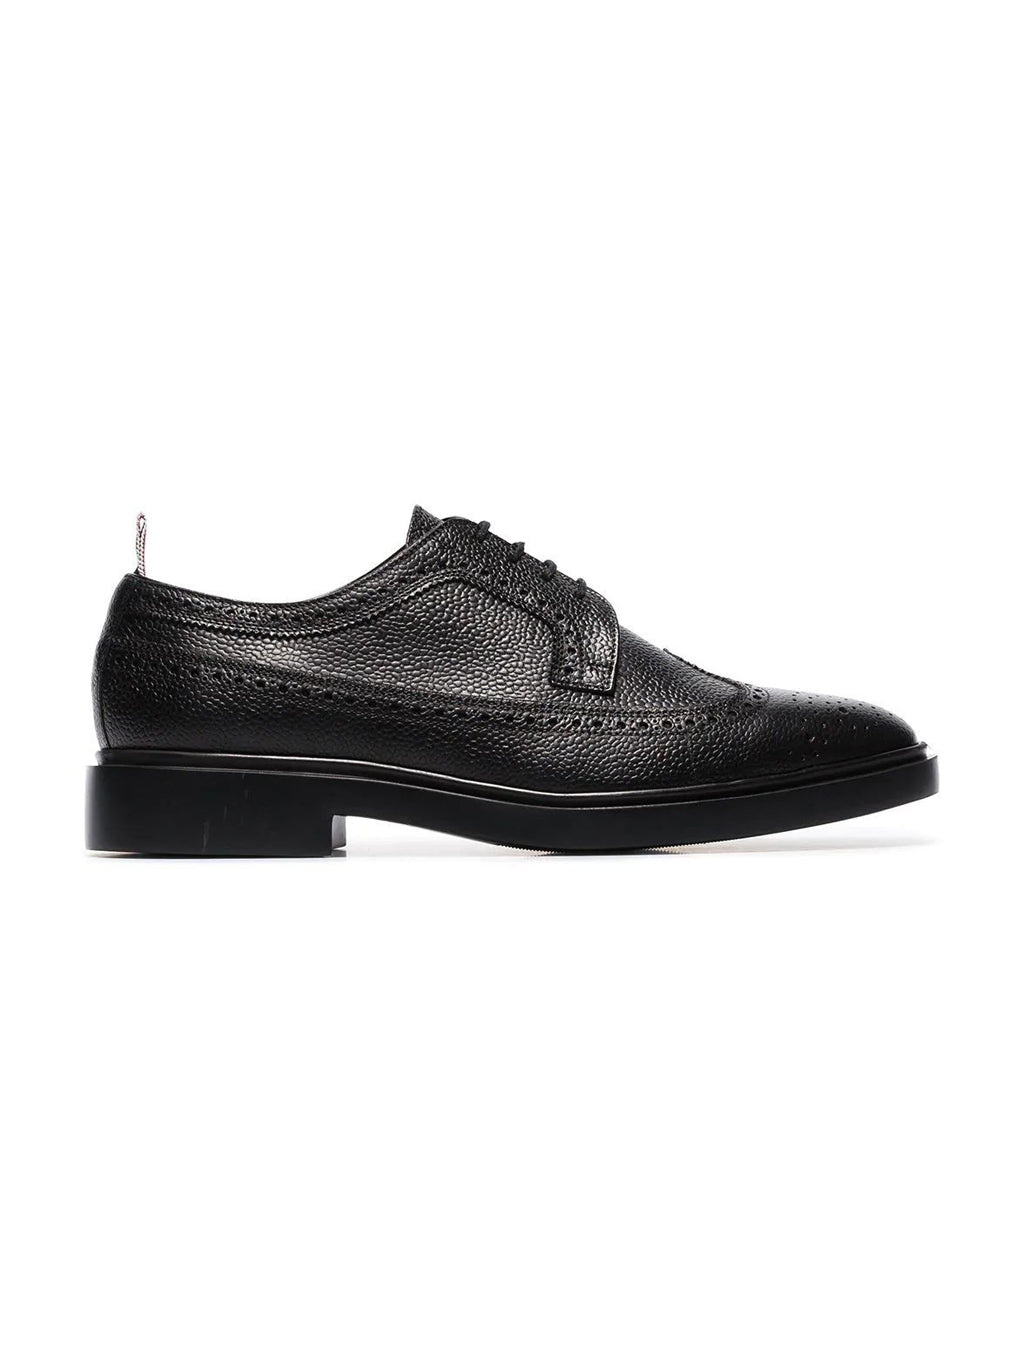 Black Leather Classic Longwing Brogues Shoes